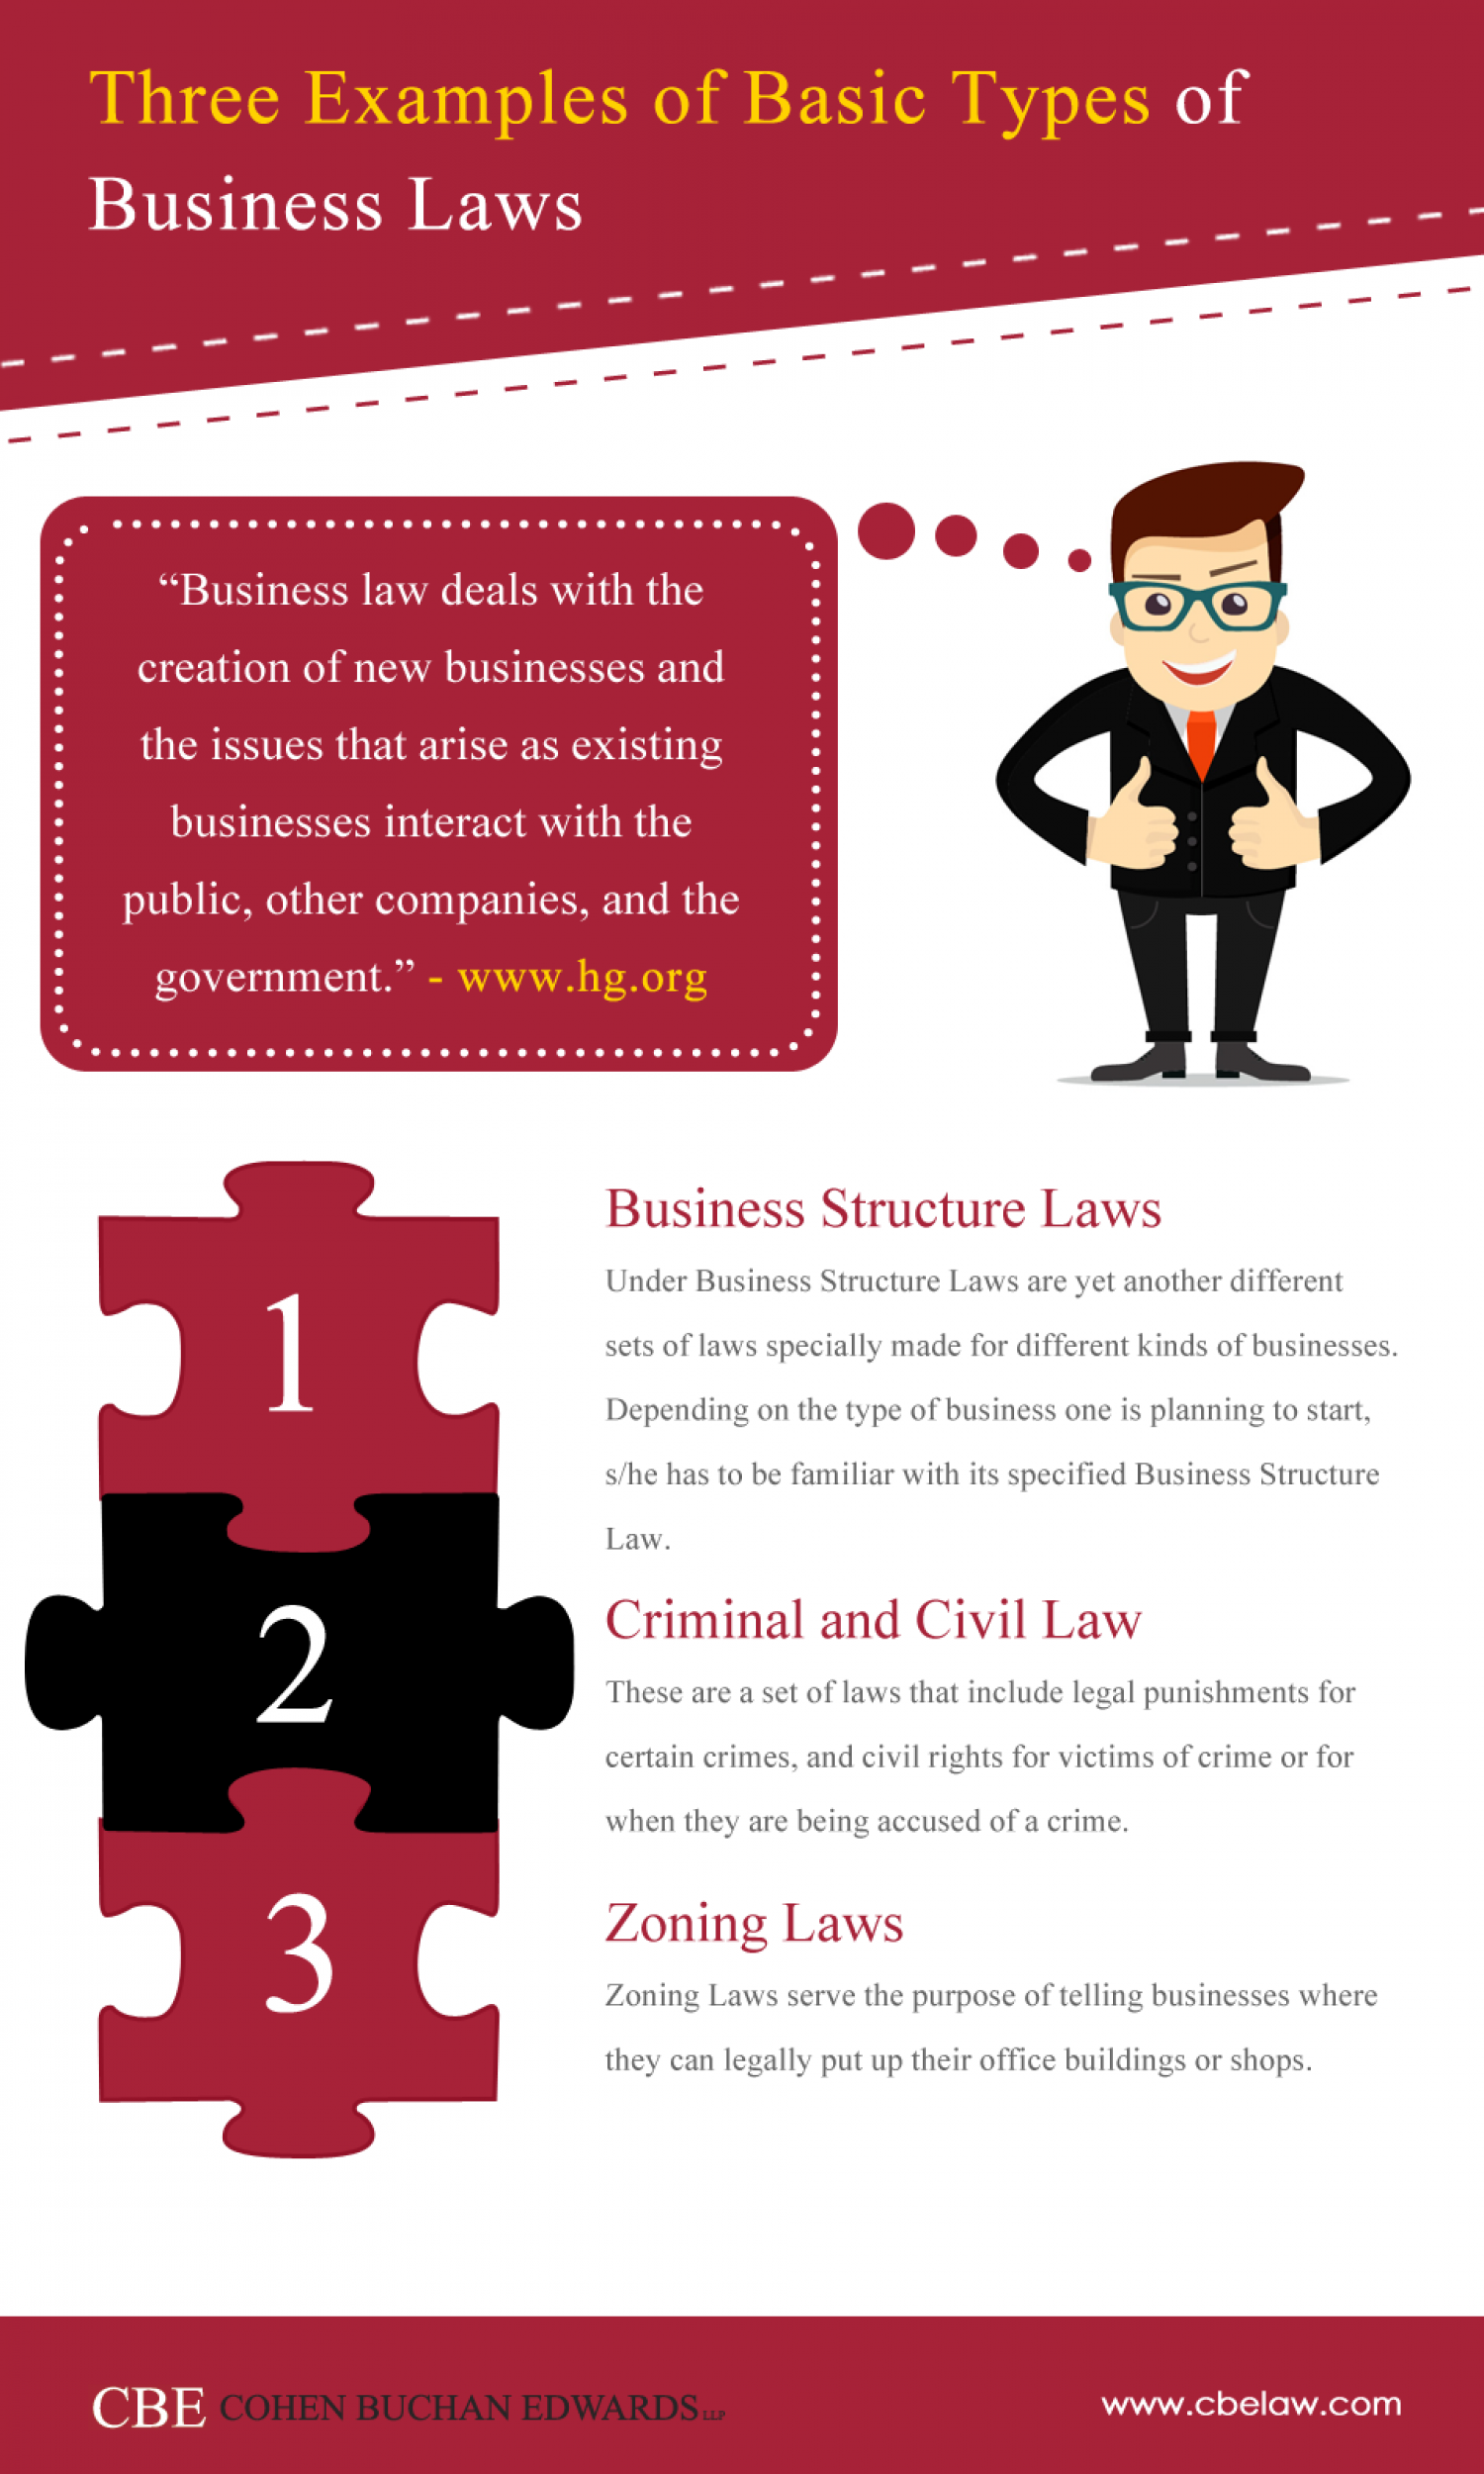 three examples of basic types of business laws visual ly three examples of basic types of business laws infographic